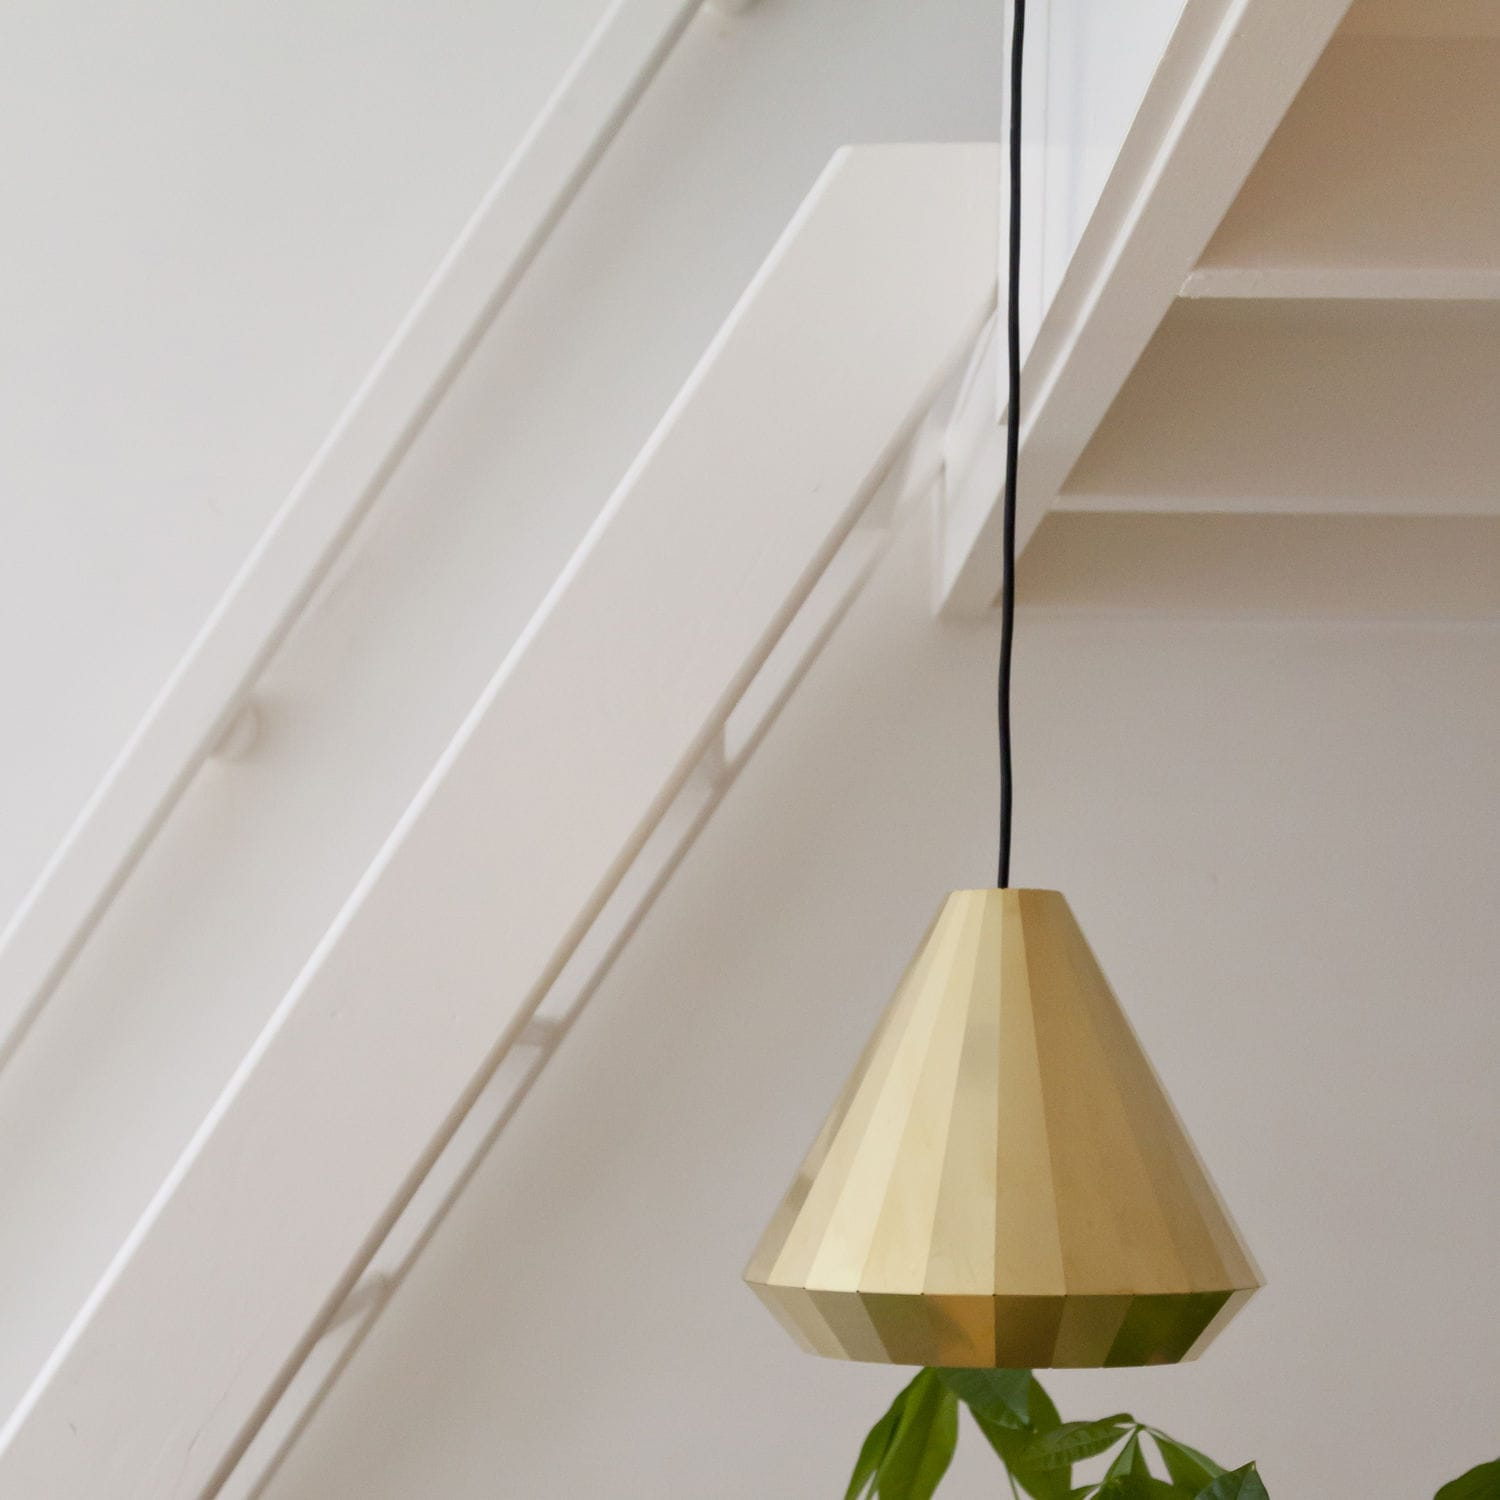 Suspension Contemporaine Brass Light By David Derksen Suspension Contemporaine En Laiton Fait Main By Vij5 Archiexpo